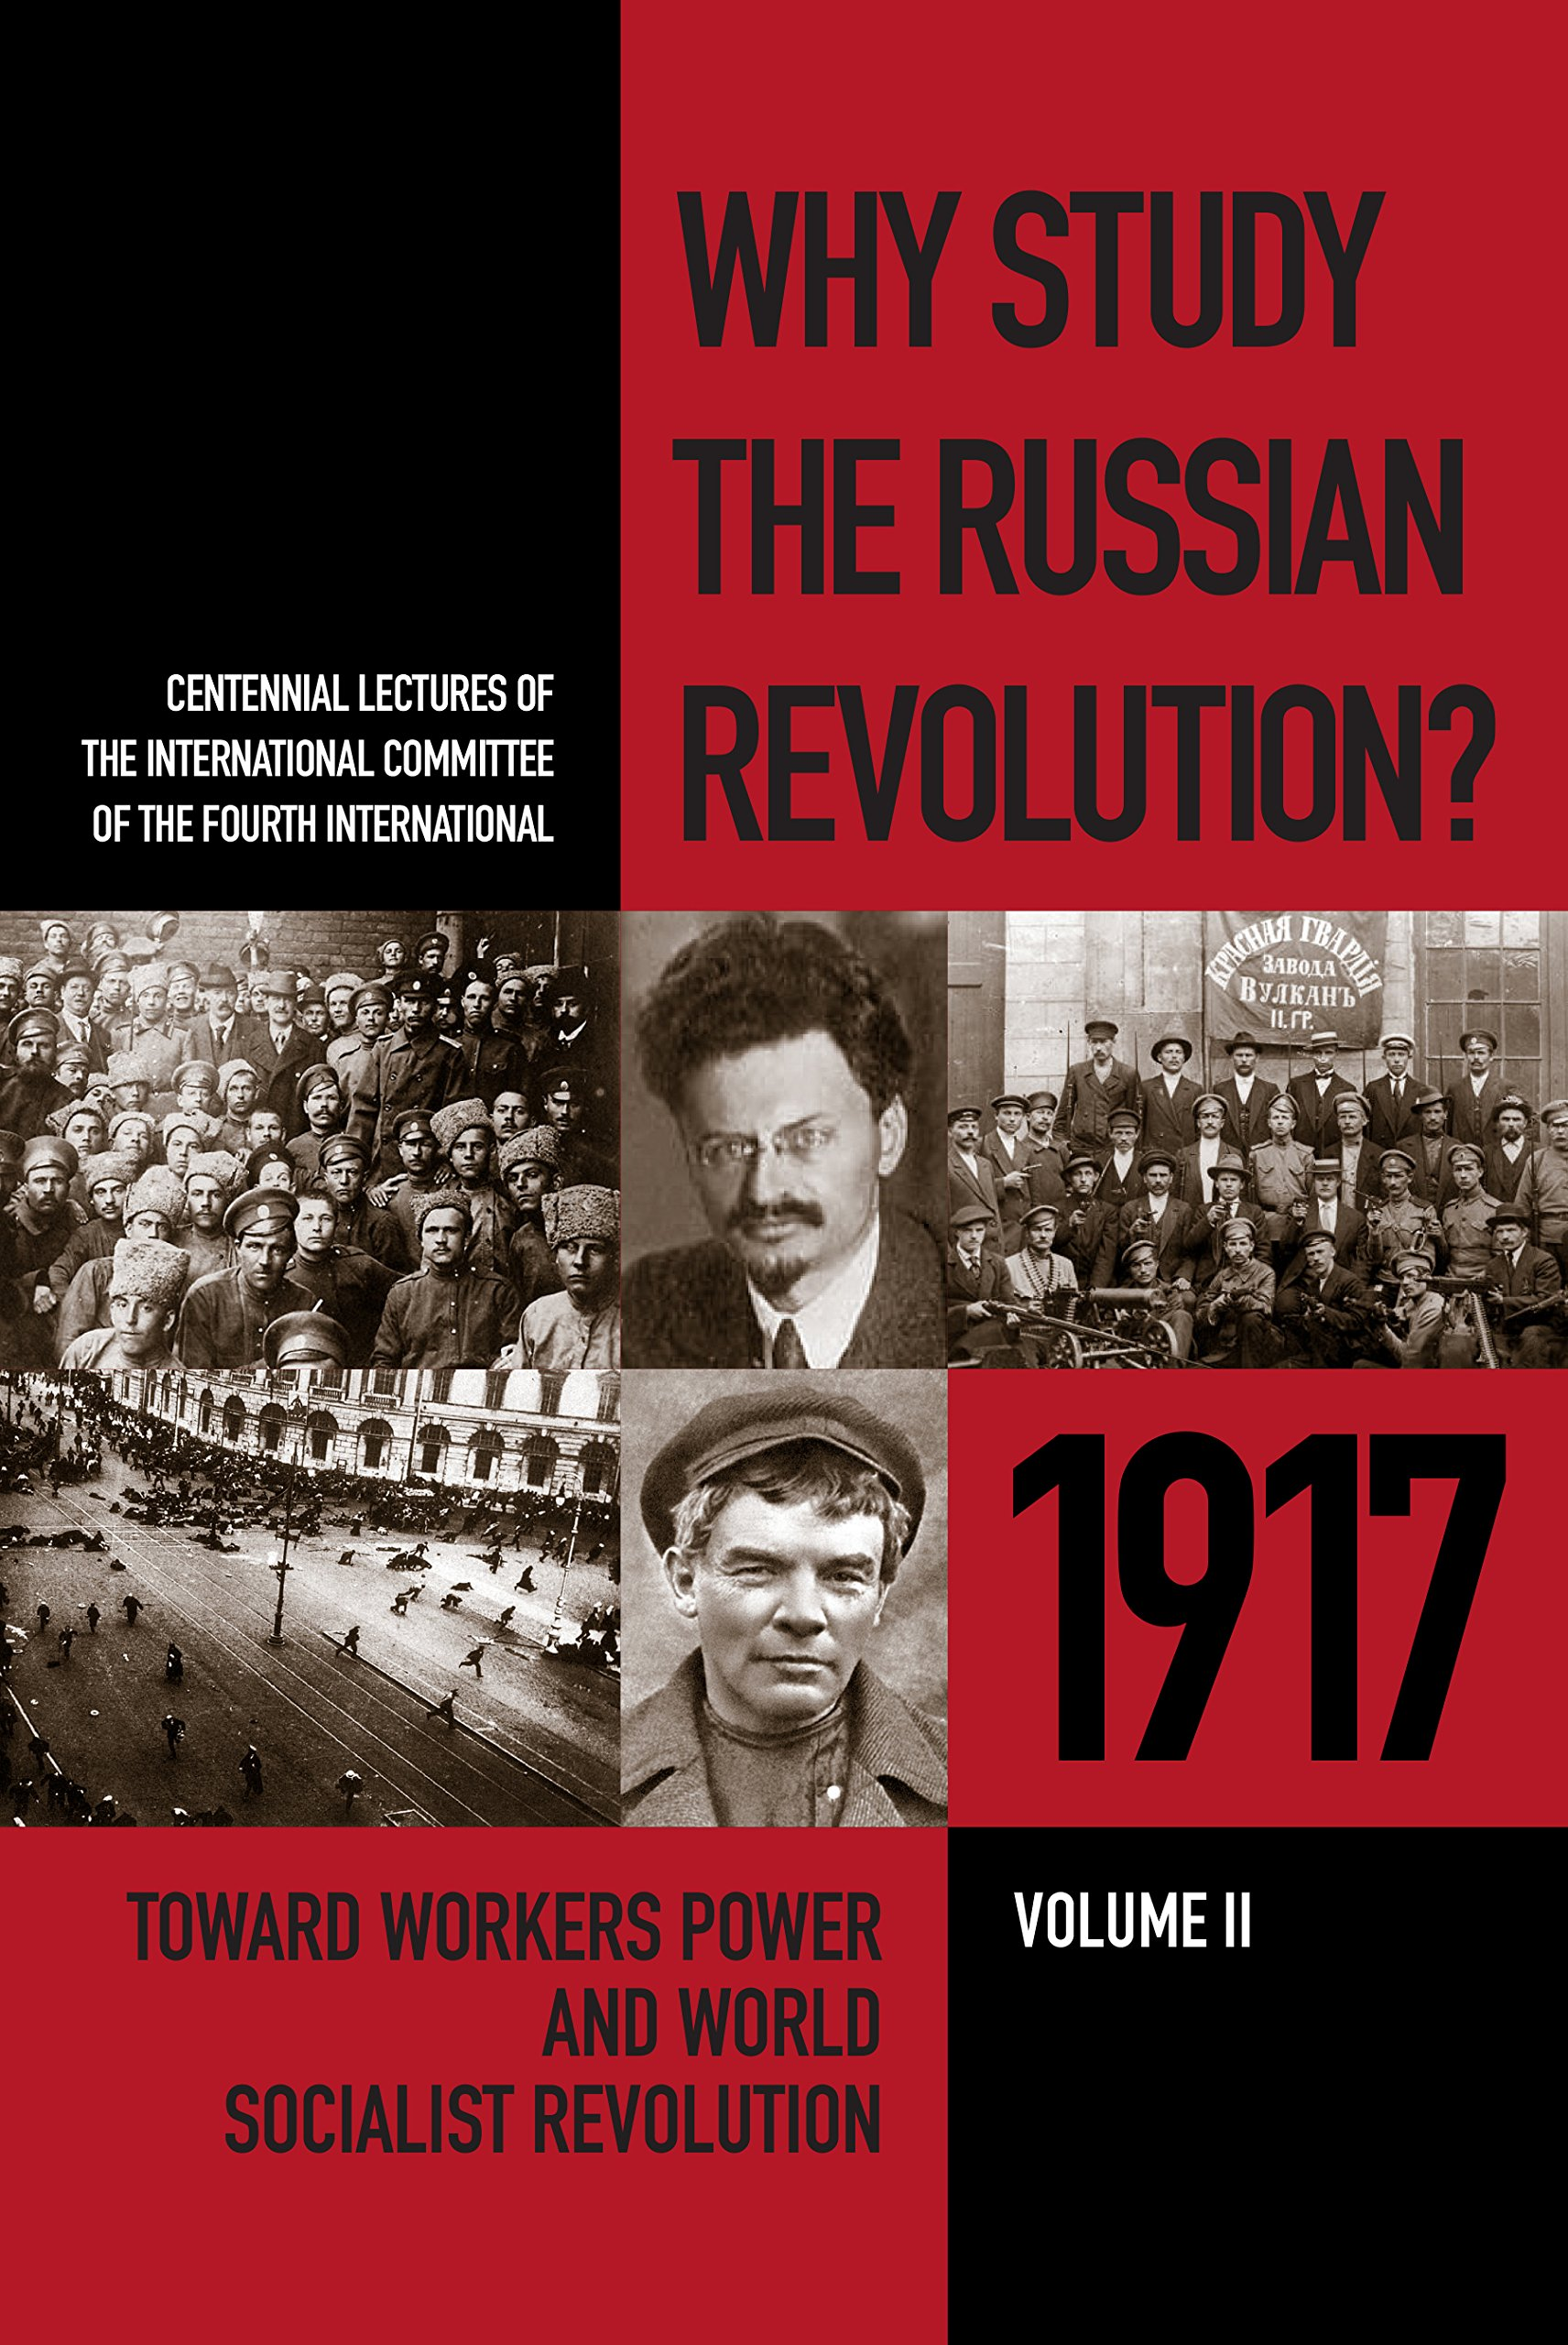 Why Study the Russian Revolution Vol II: Towards Workers Power and World Socialist Revolution PDF